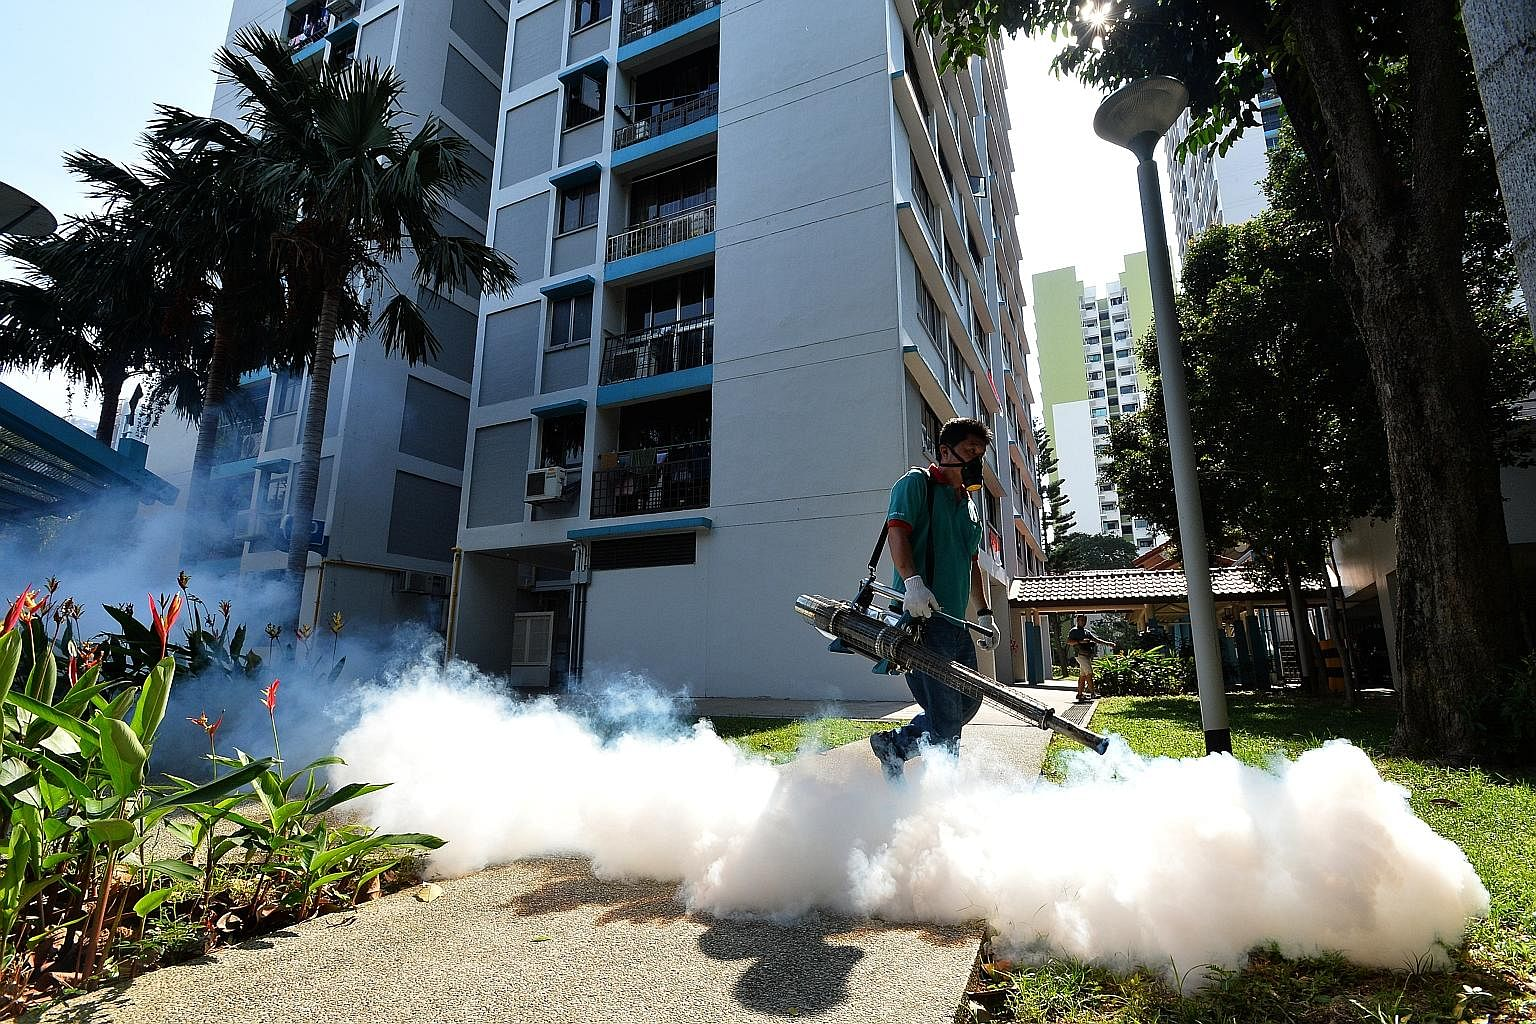 The NEA is already doubling its mosquito control efforts, such as thermal fogging, around Zika-affected areas in Singapore. However, the current outbreak also strengthens the case for pursuing innovative vector control methods over the long run.